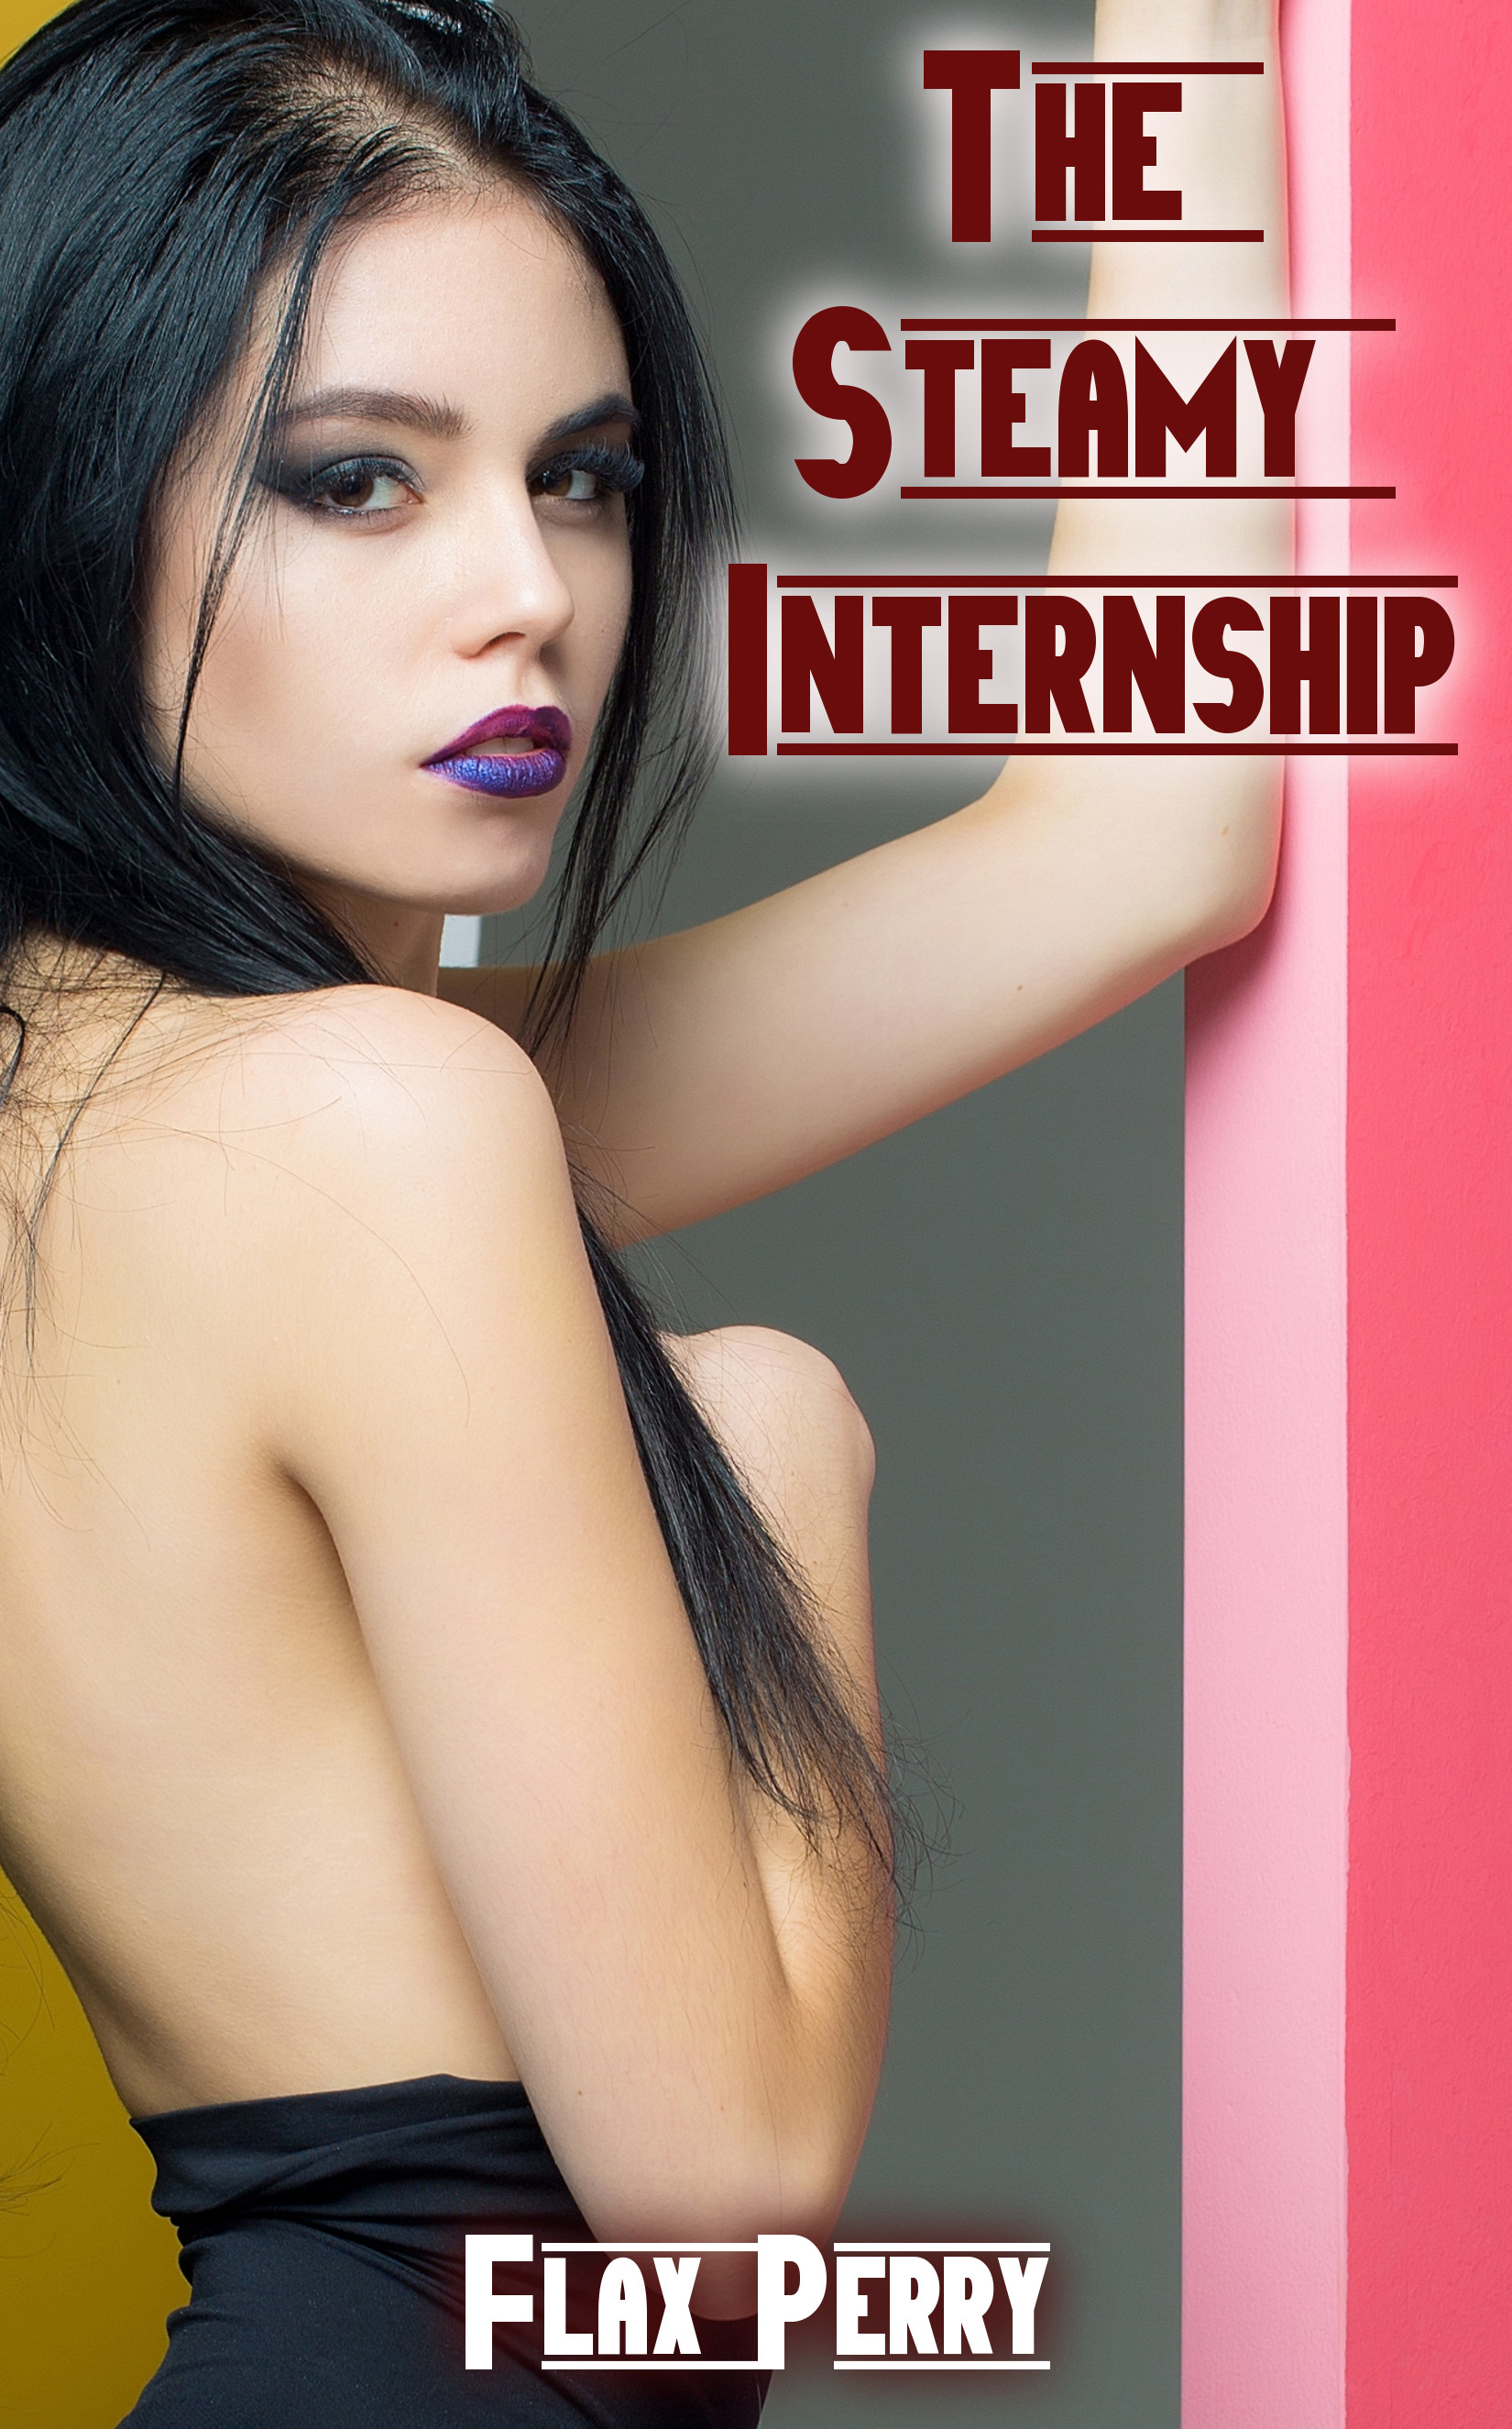 The Steamy Internship